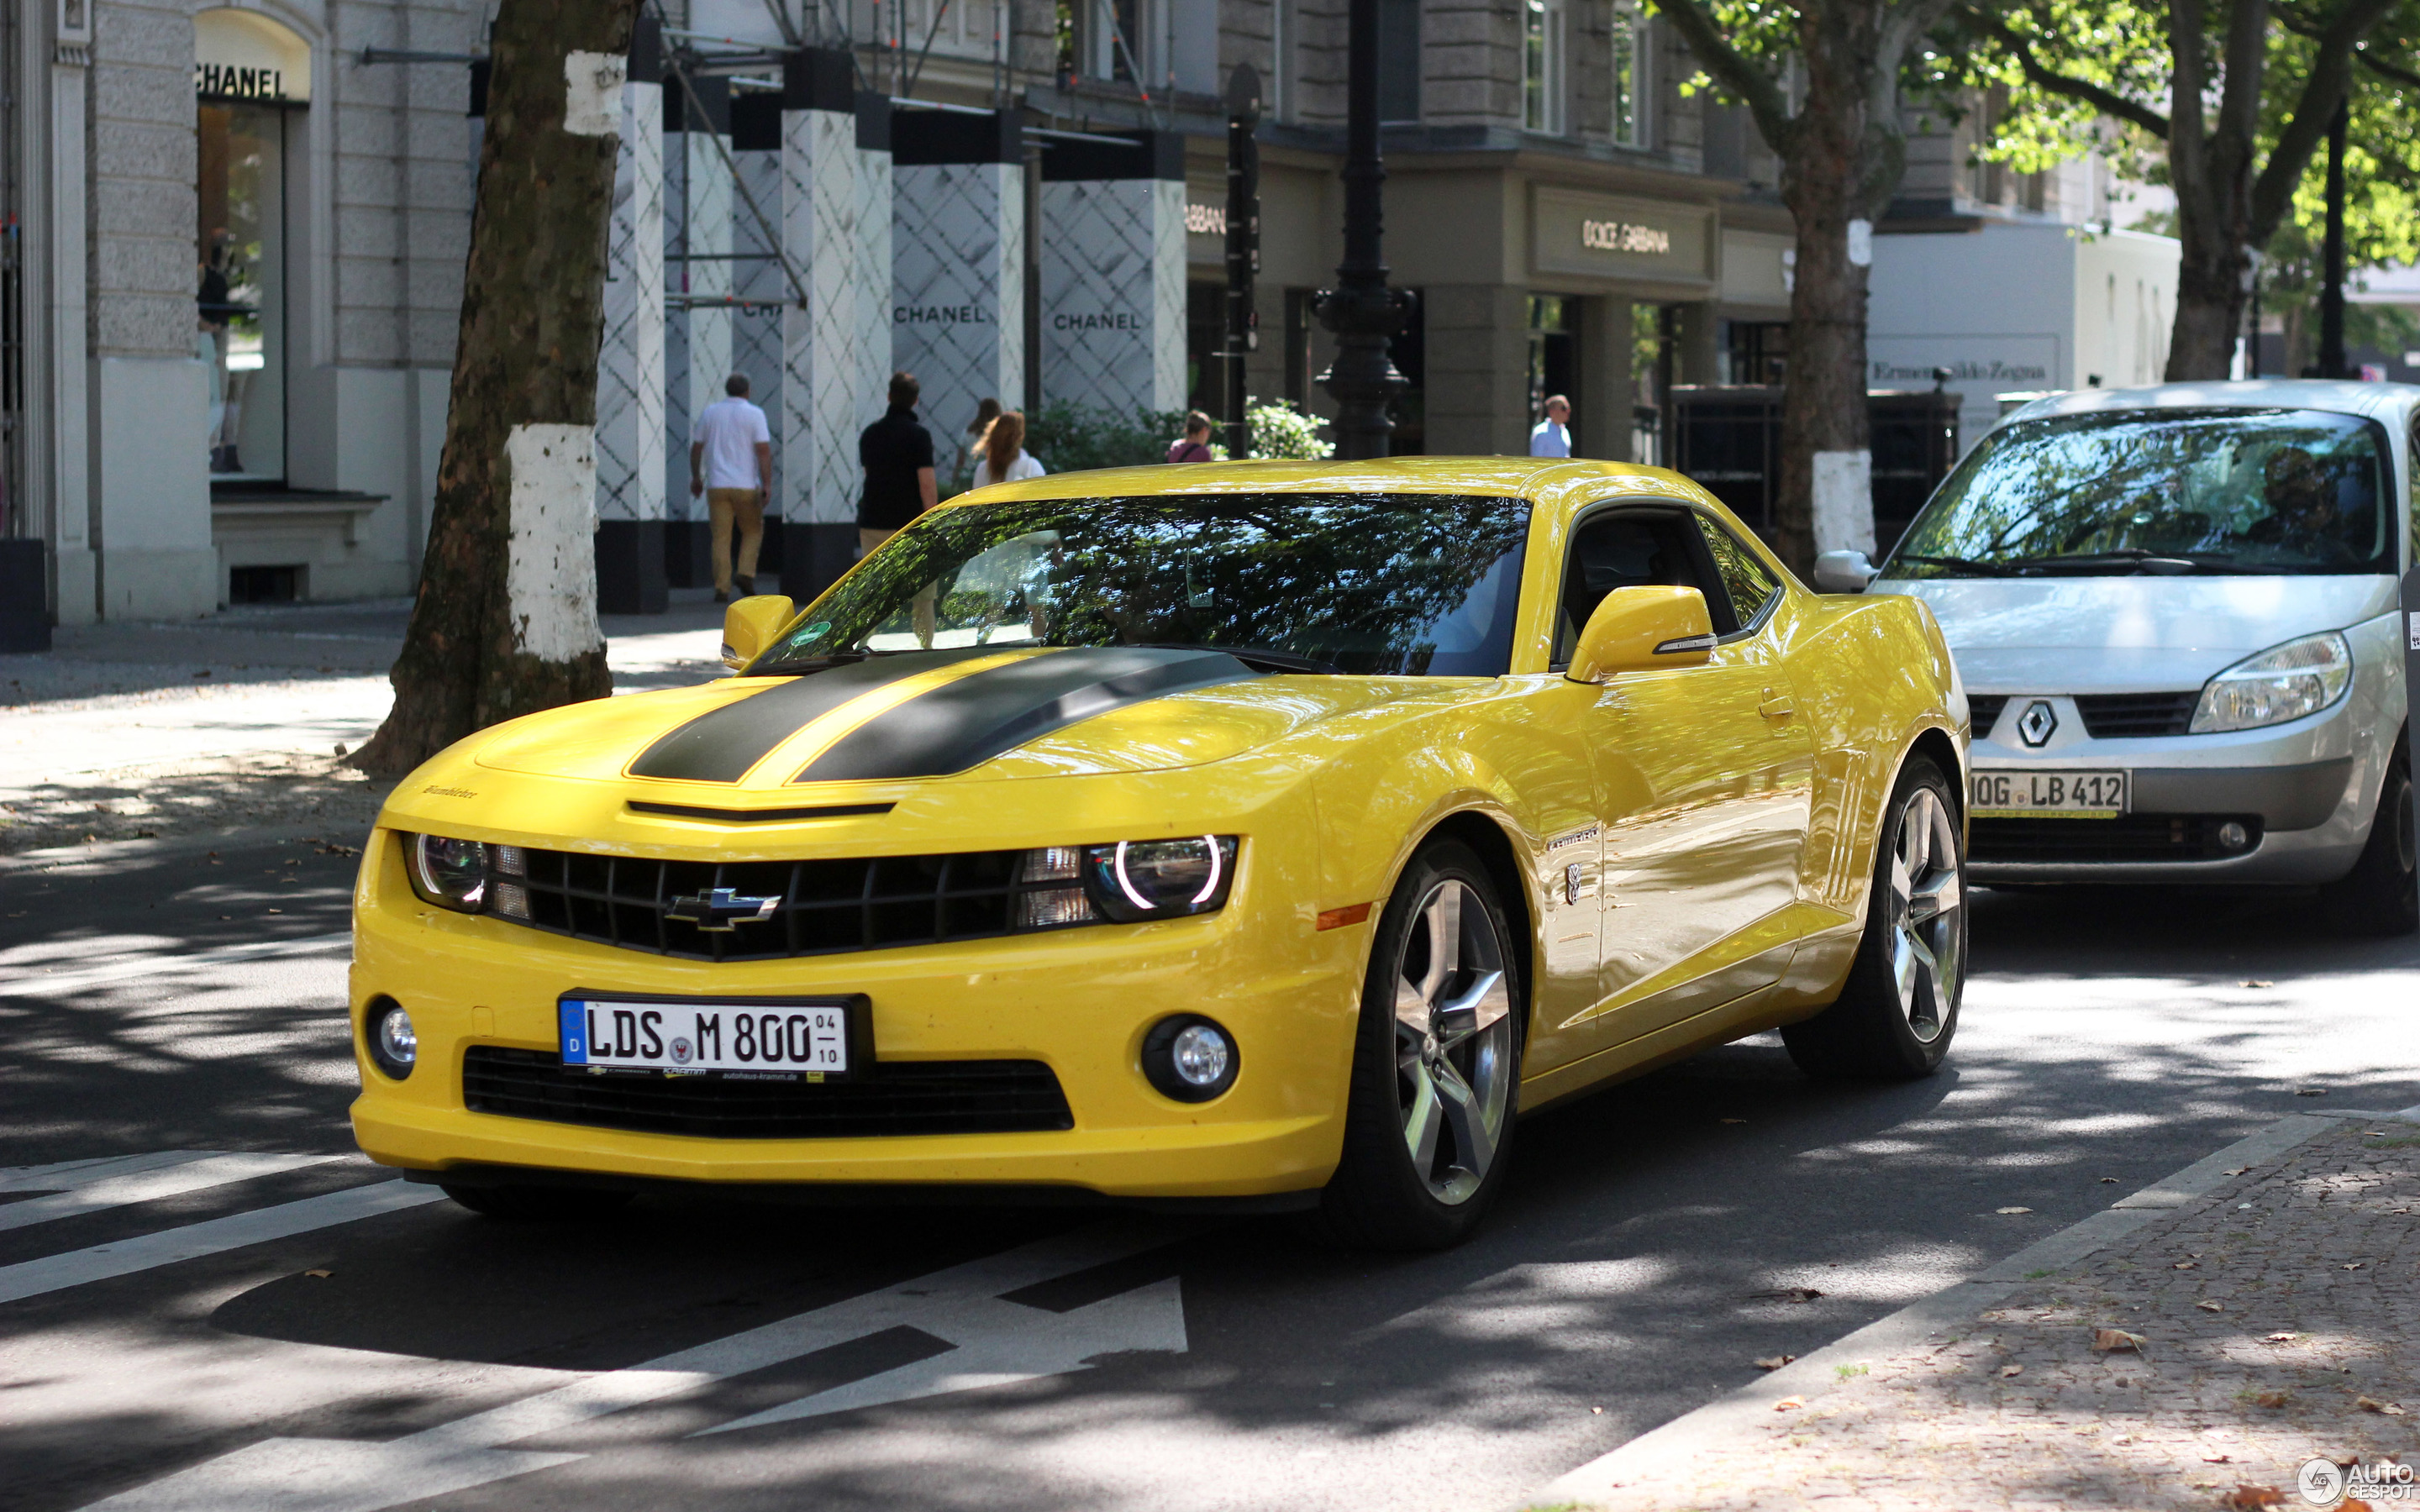 Chevrolet Camaro SS Transformers Edition - 30 July 2016 - Autogespot